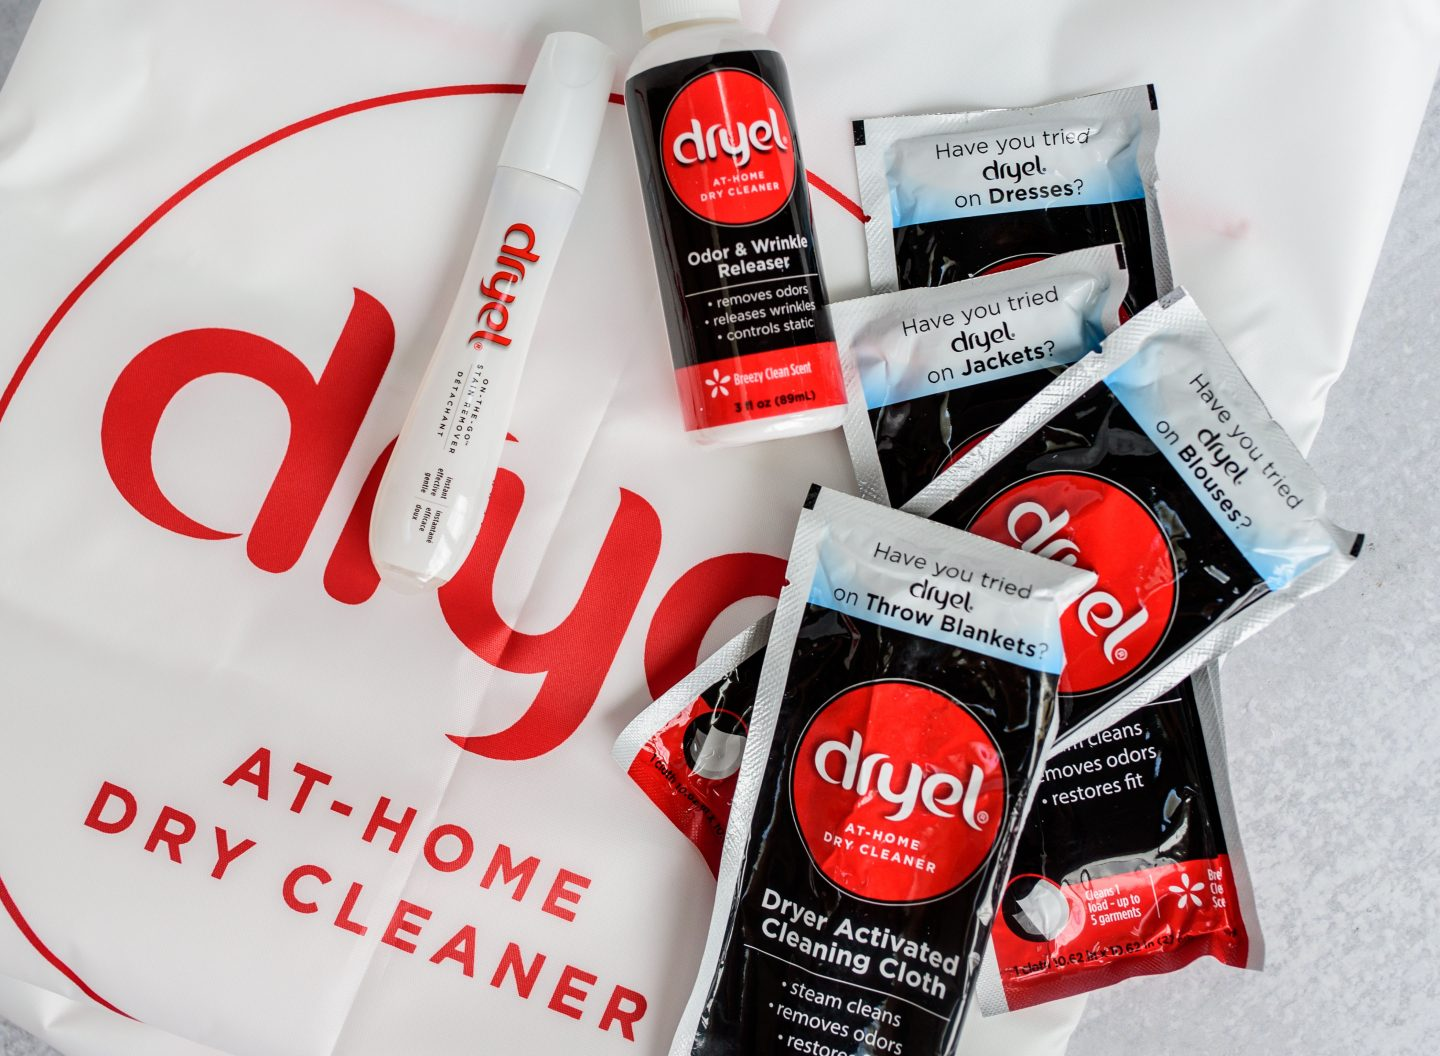 At-Home Dry Cleaning from Dryel